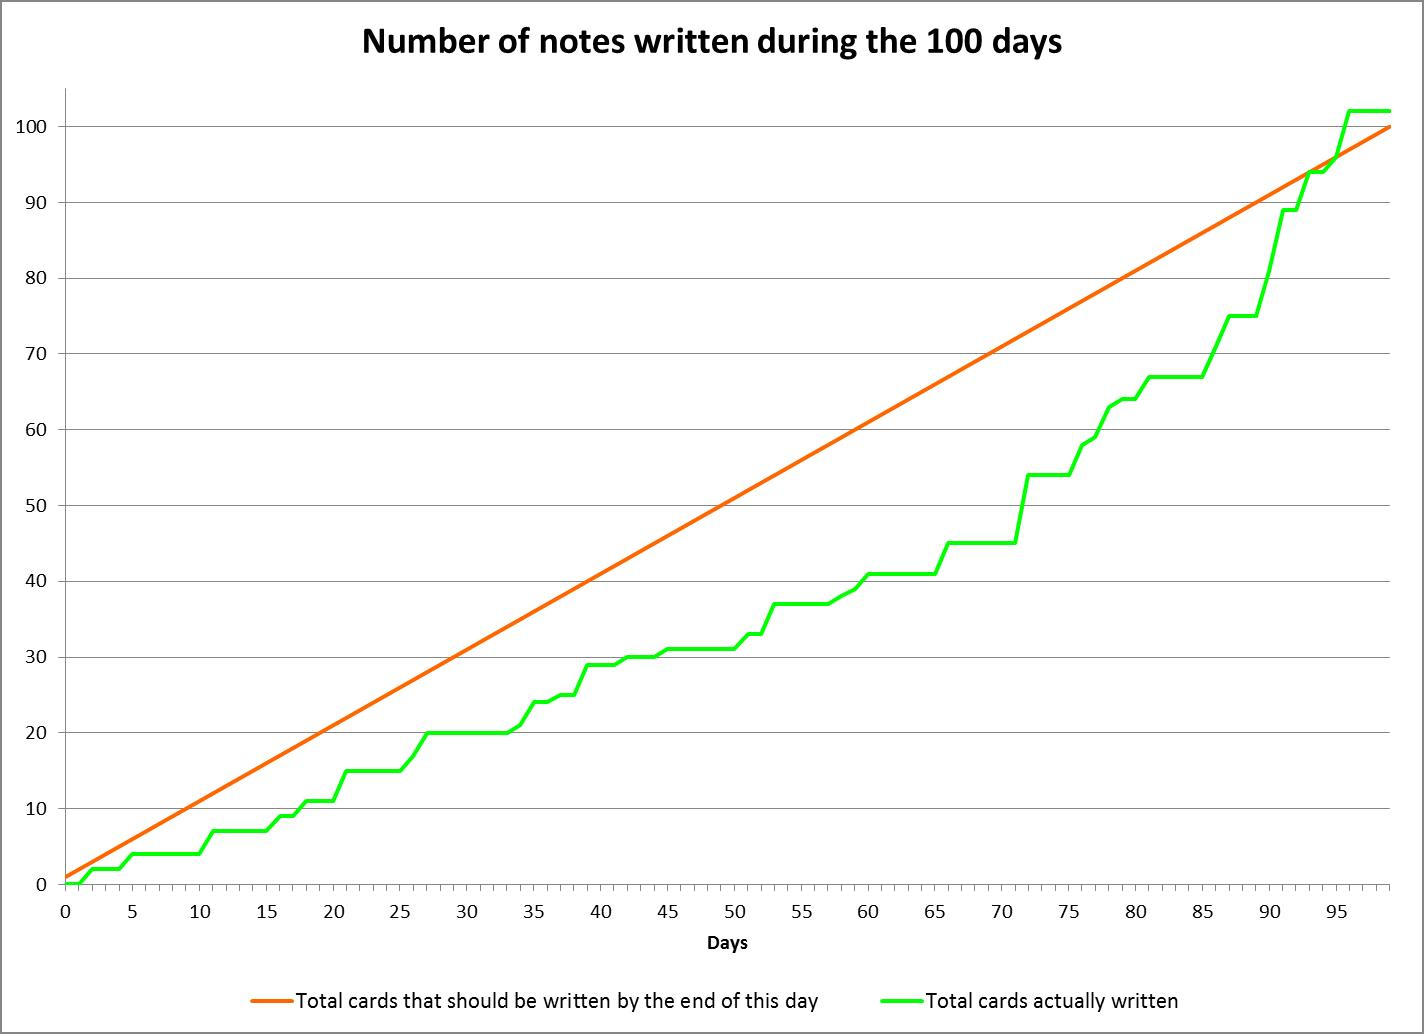 Number of notes written during the 100 days